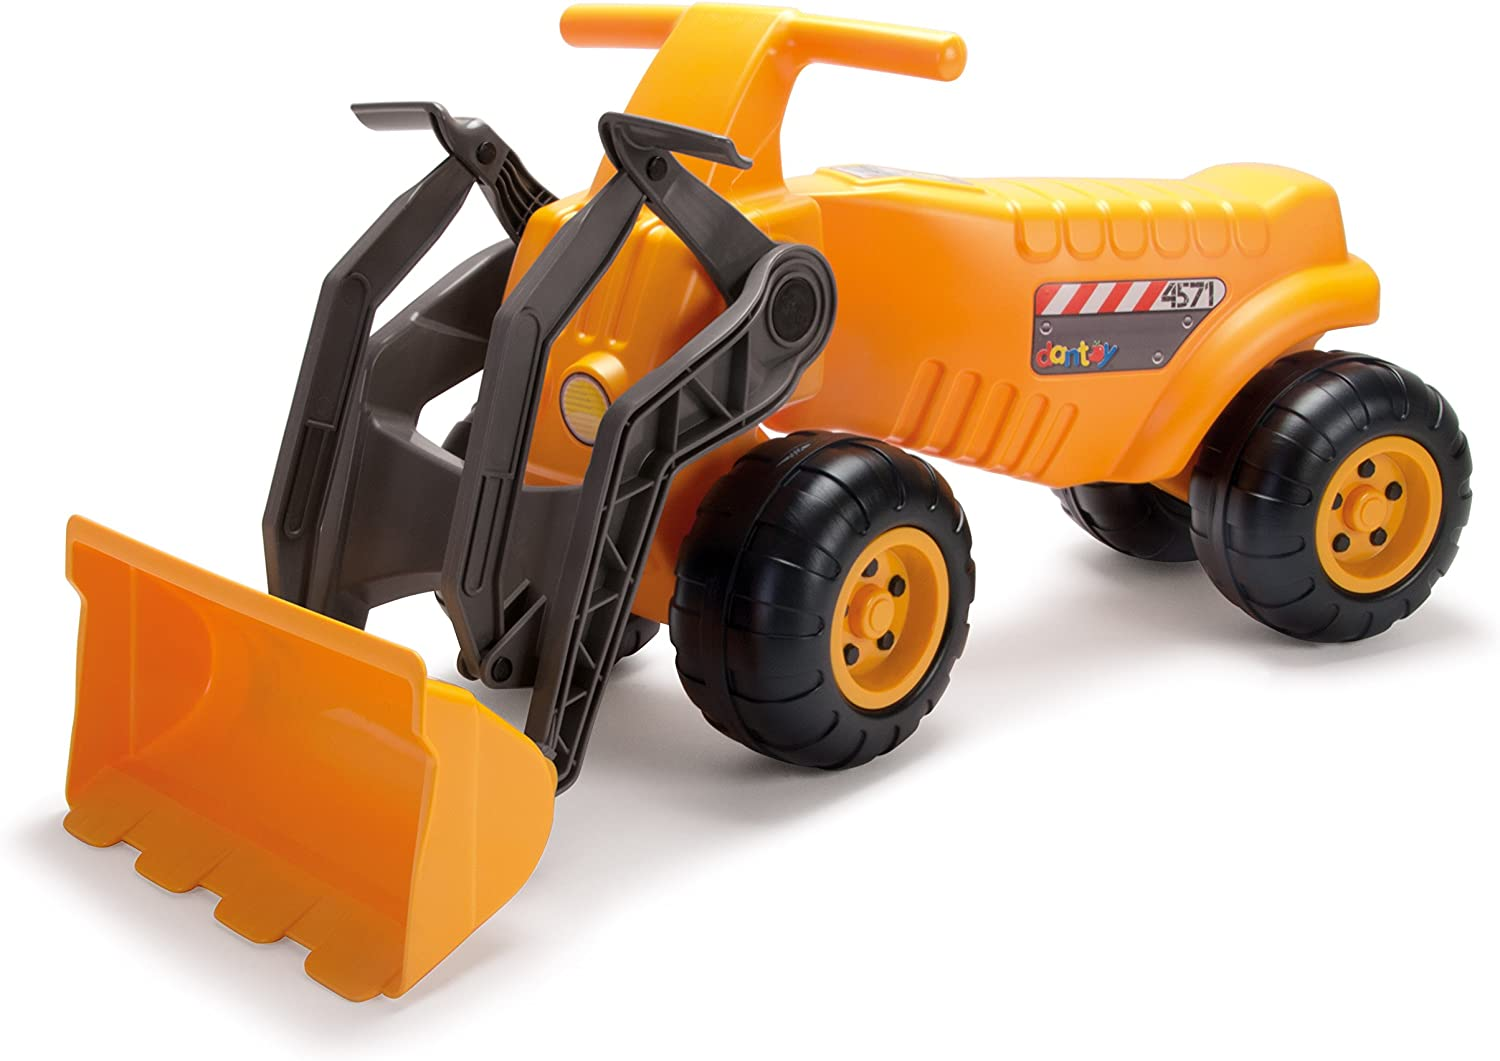 Dantoy Giant Excavator, Sit and Ride Vehicle, Made in Denmark